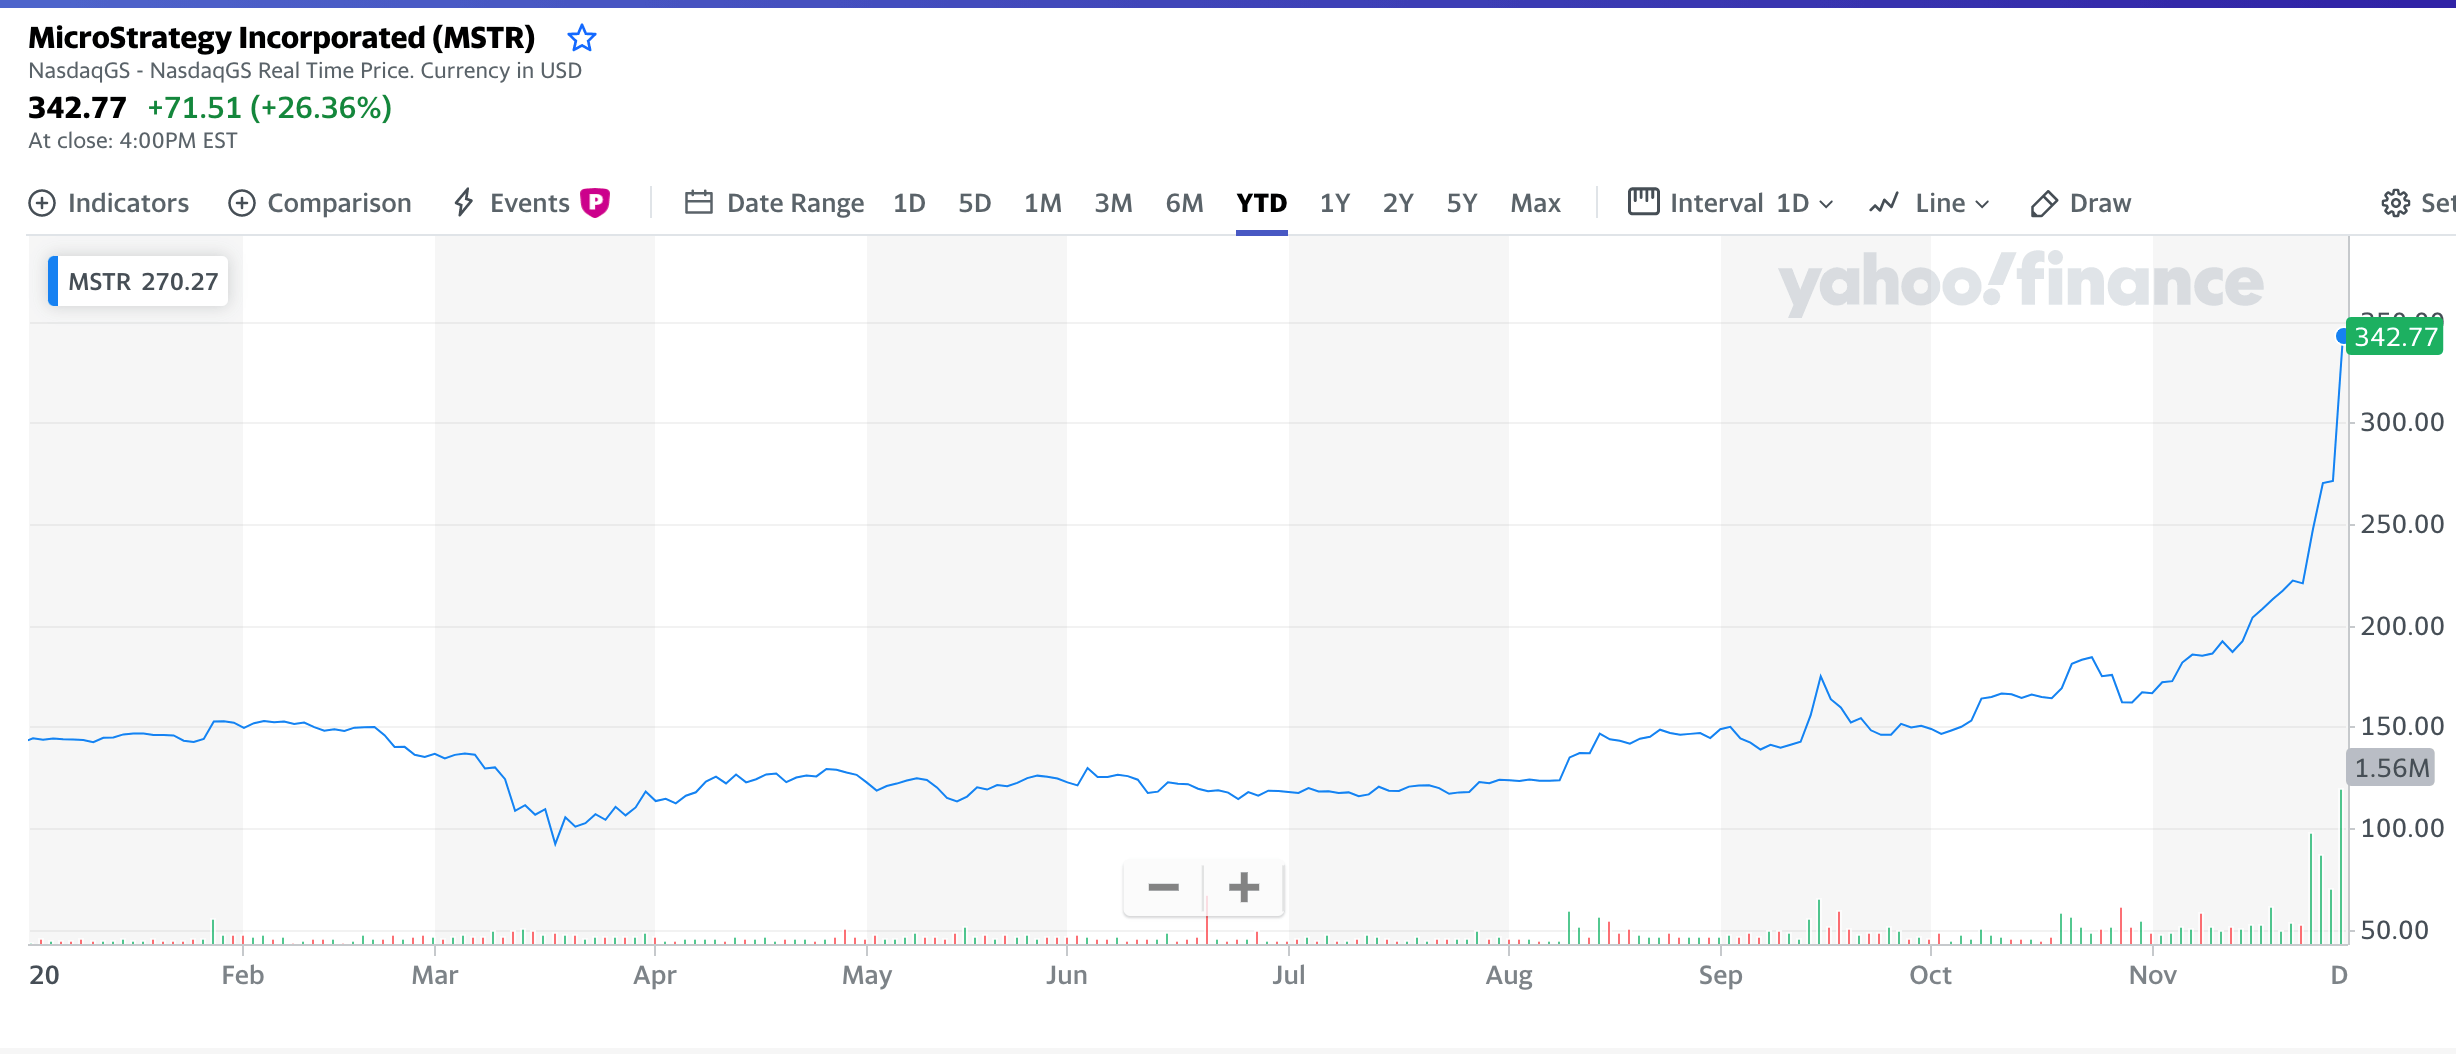 MicroStrategy's shares chart